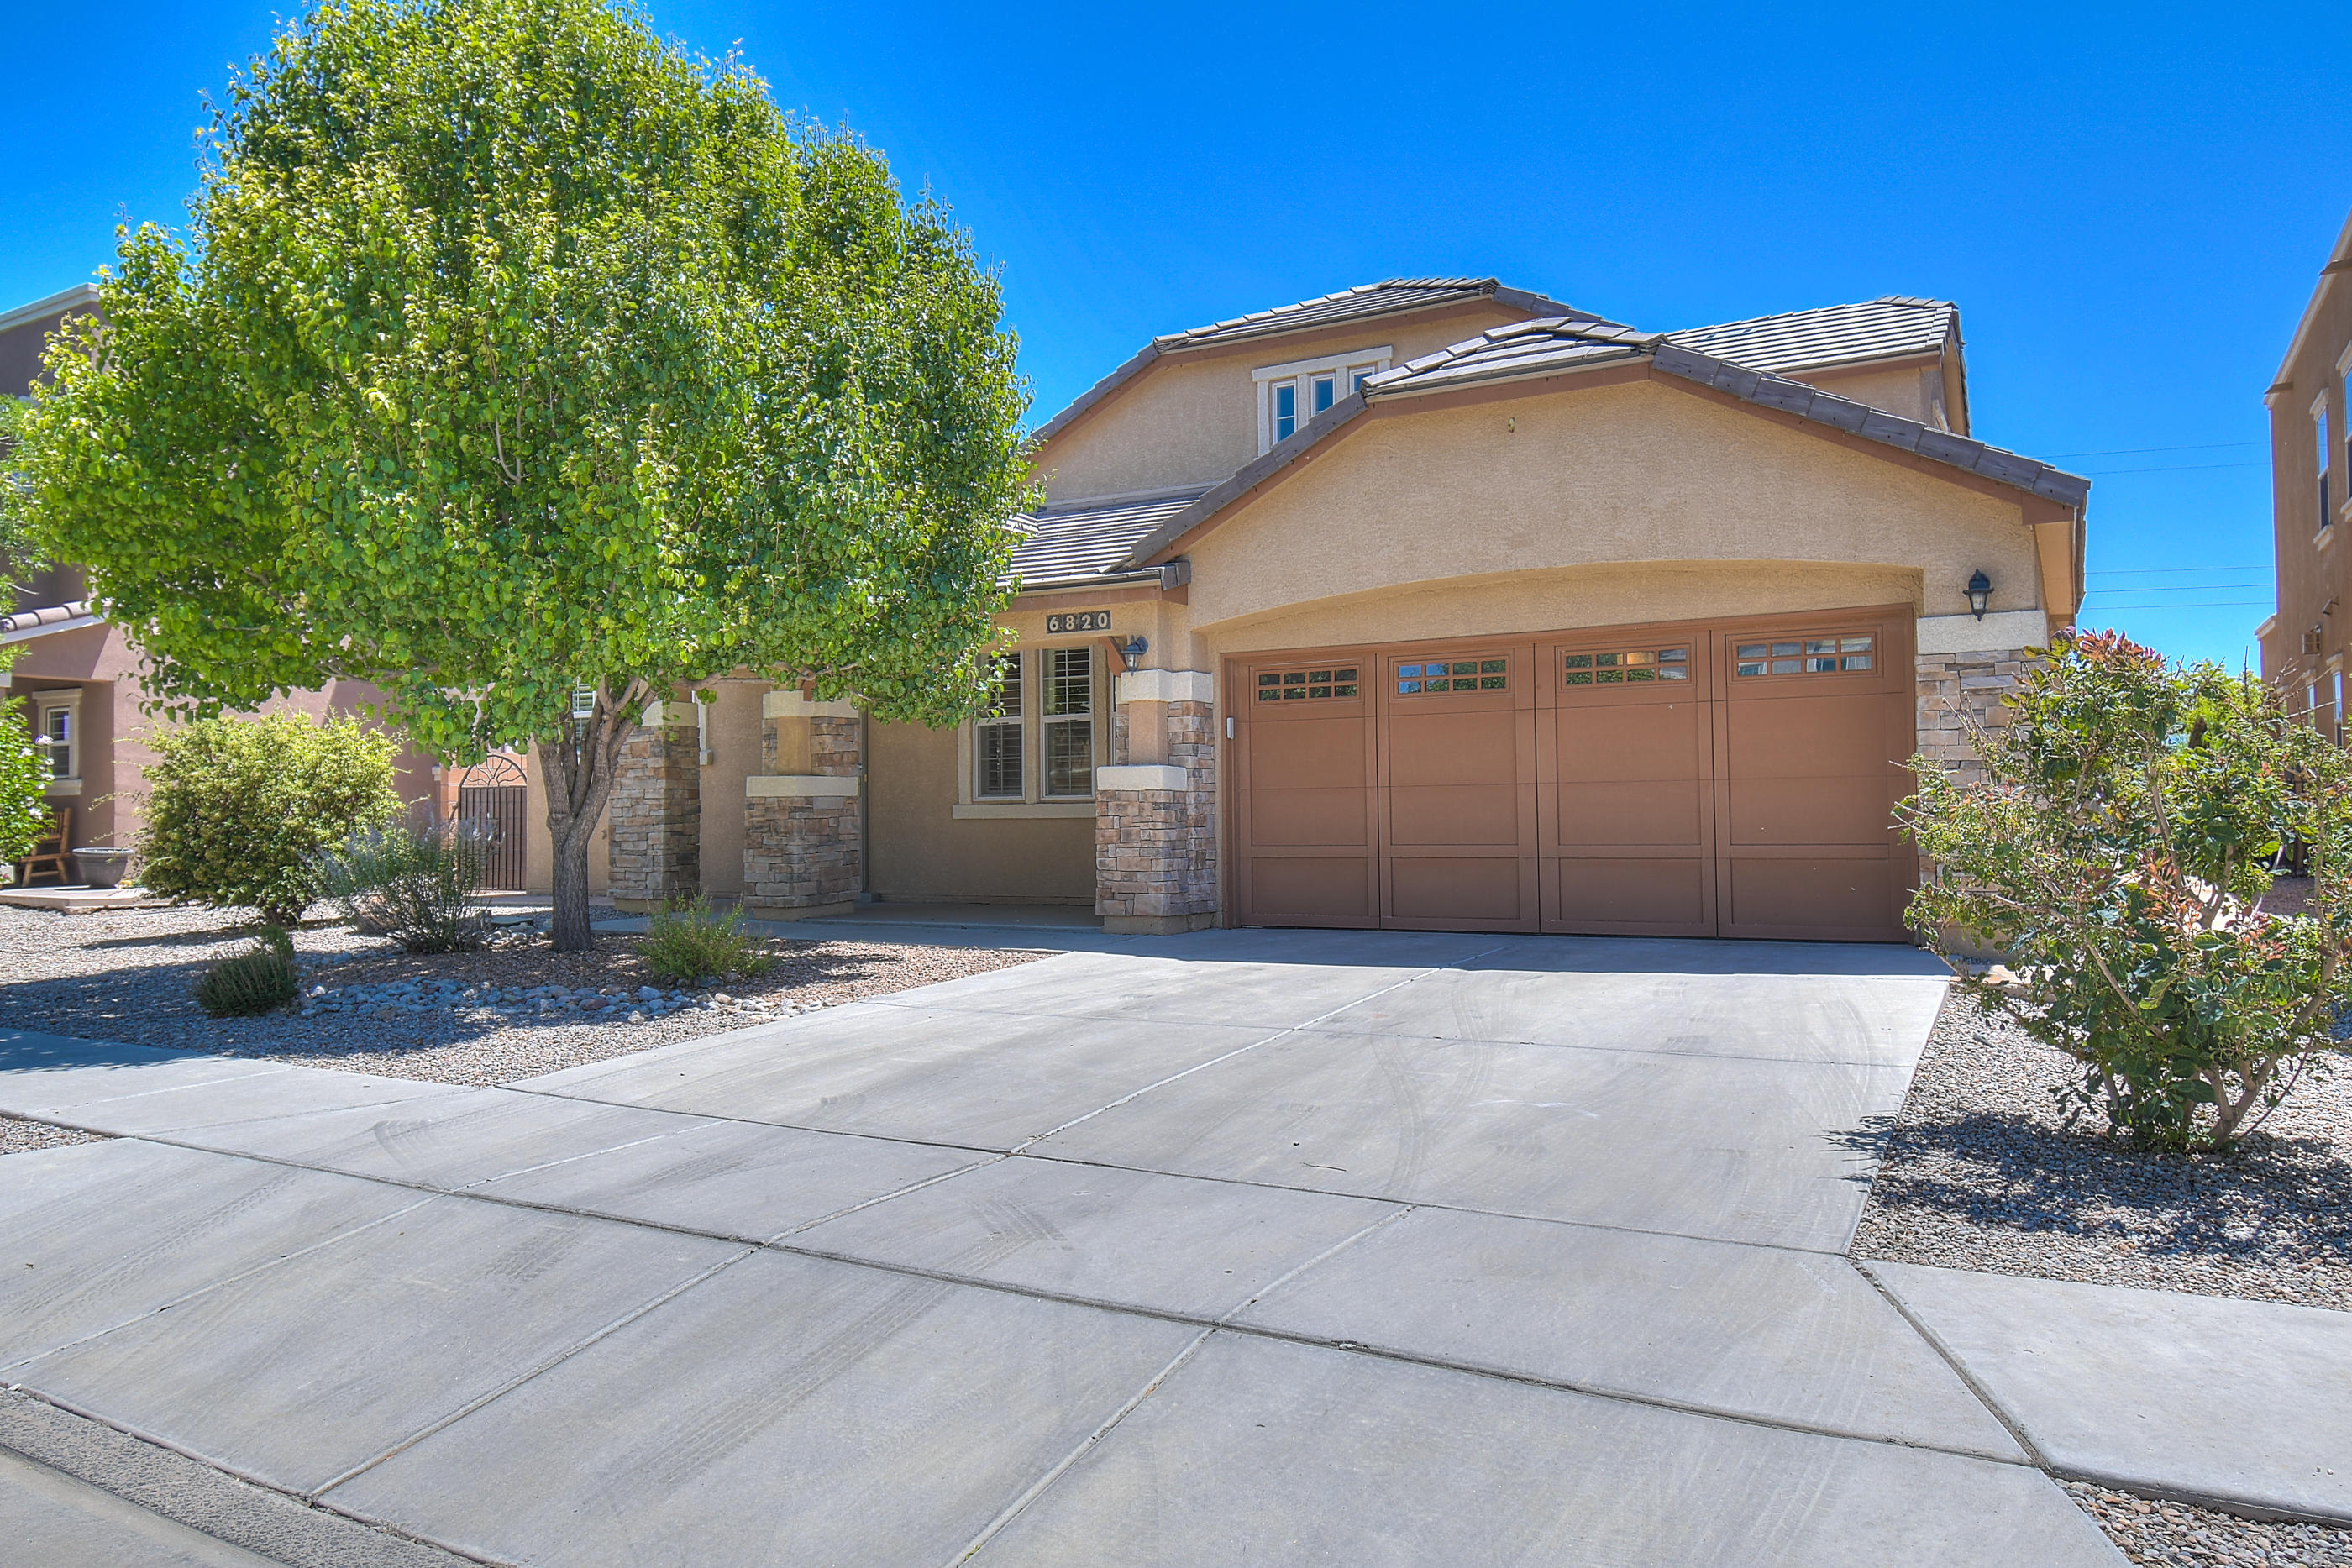 6820 NW Vista Del Sol Drive, Northwest Albuquerque and Northwest Heights, New Mexico